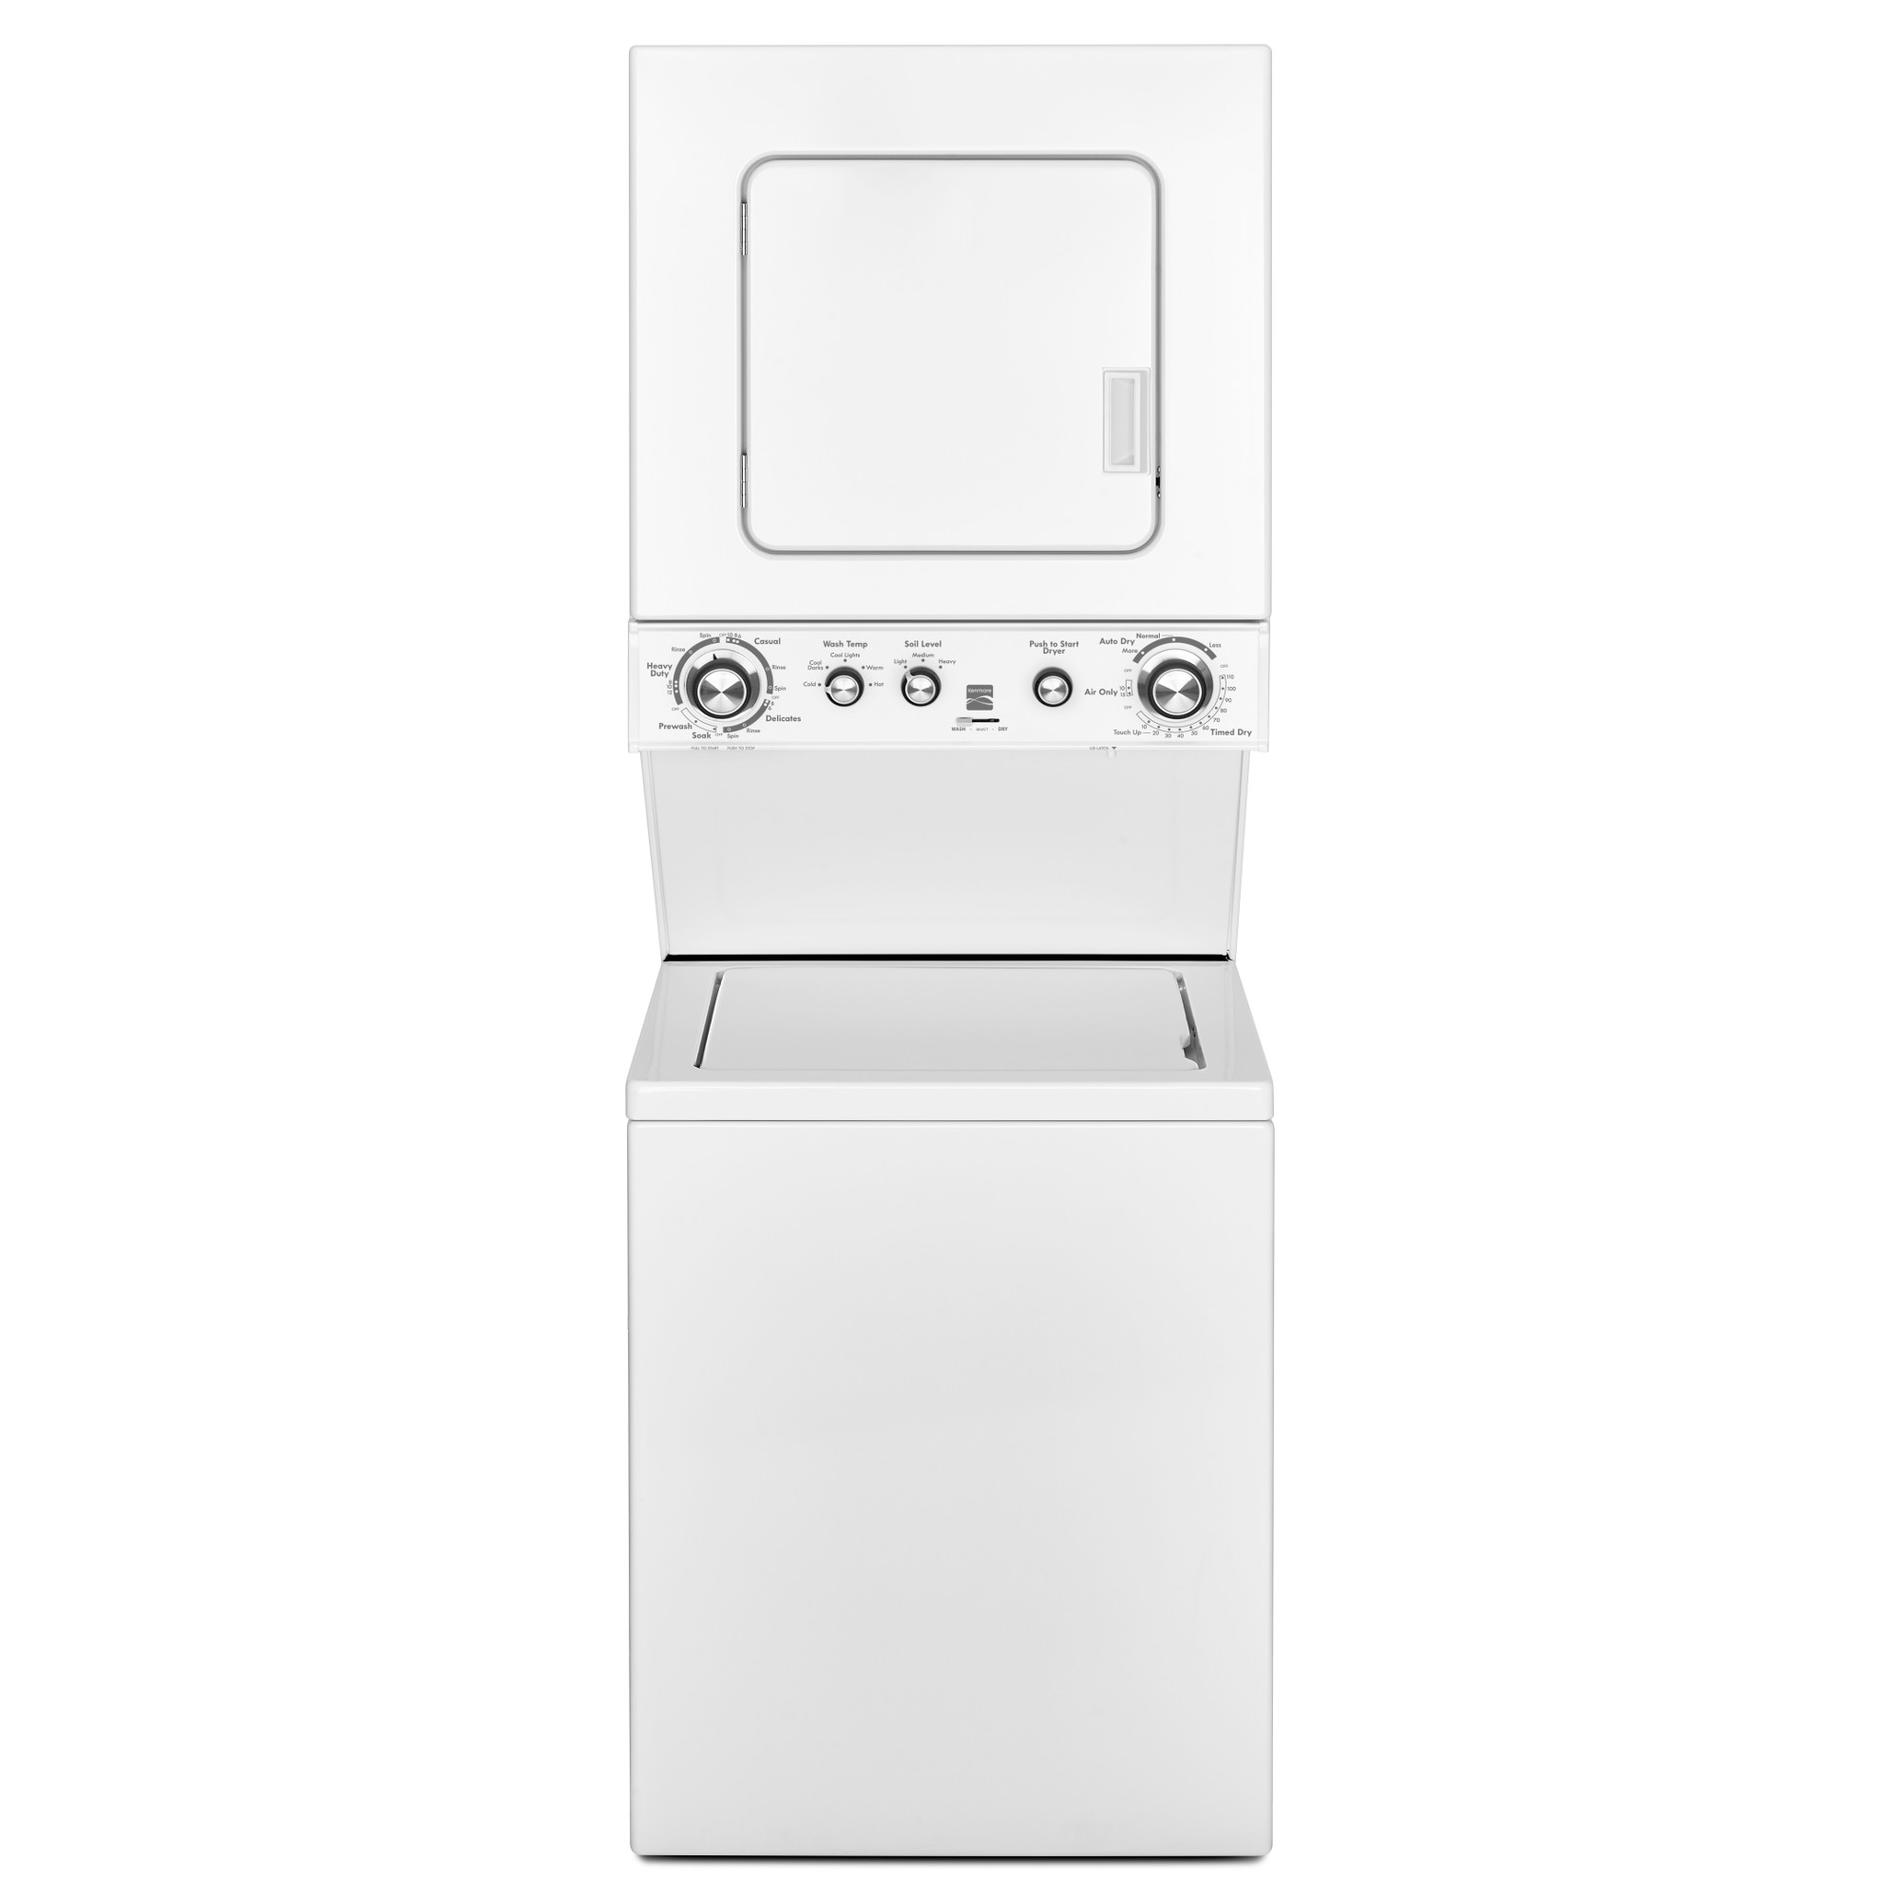 Kenmore 81422 24 1.5 cu. ft. Electric Laundry Center - White